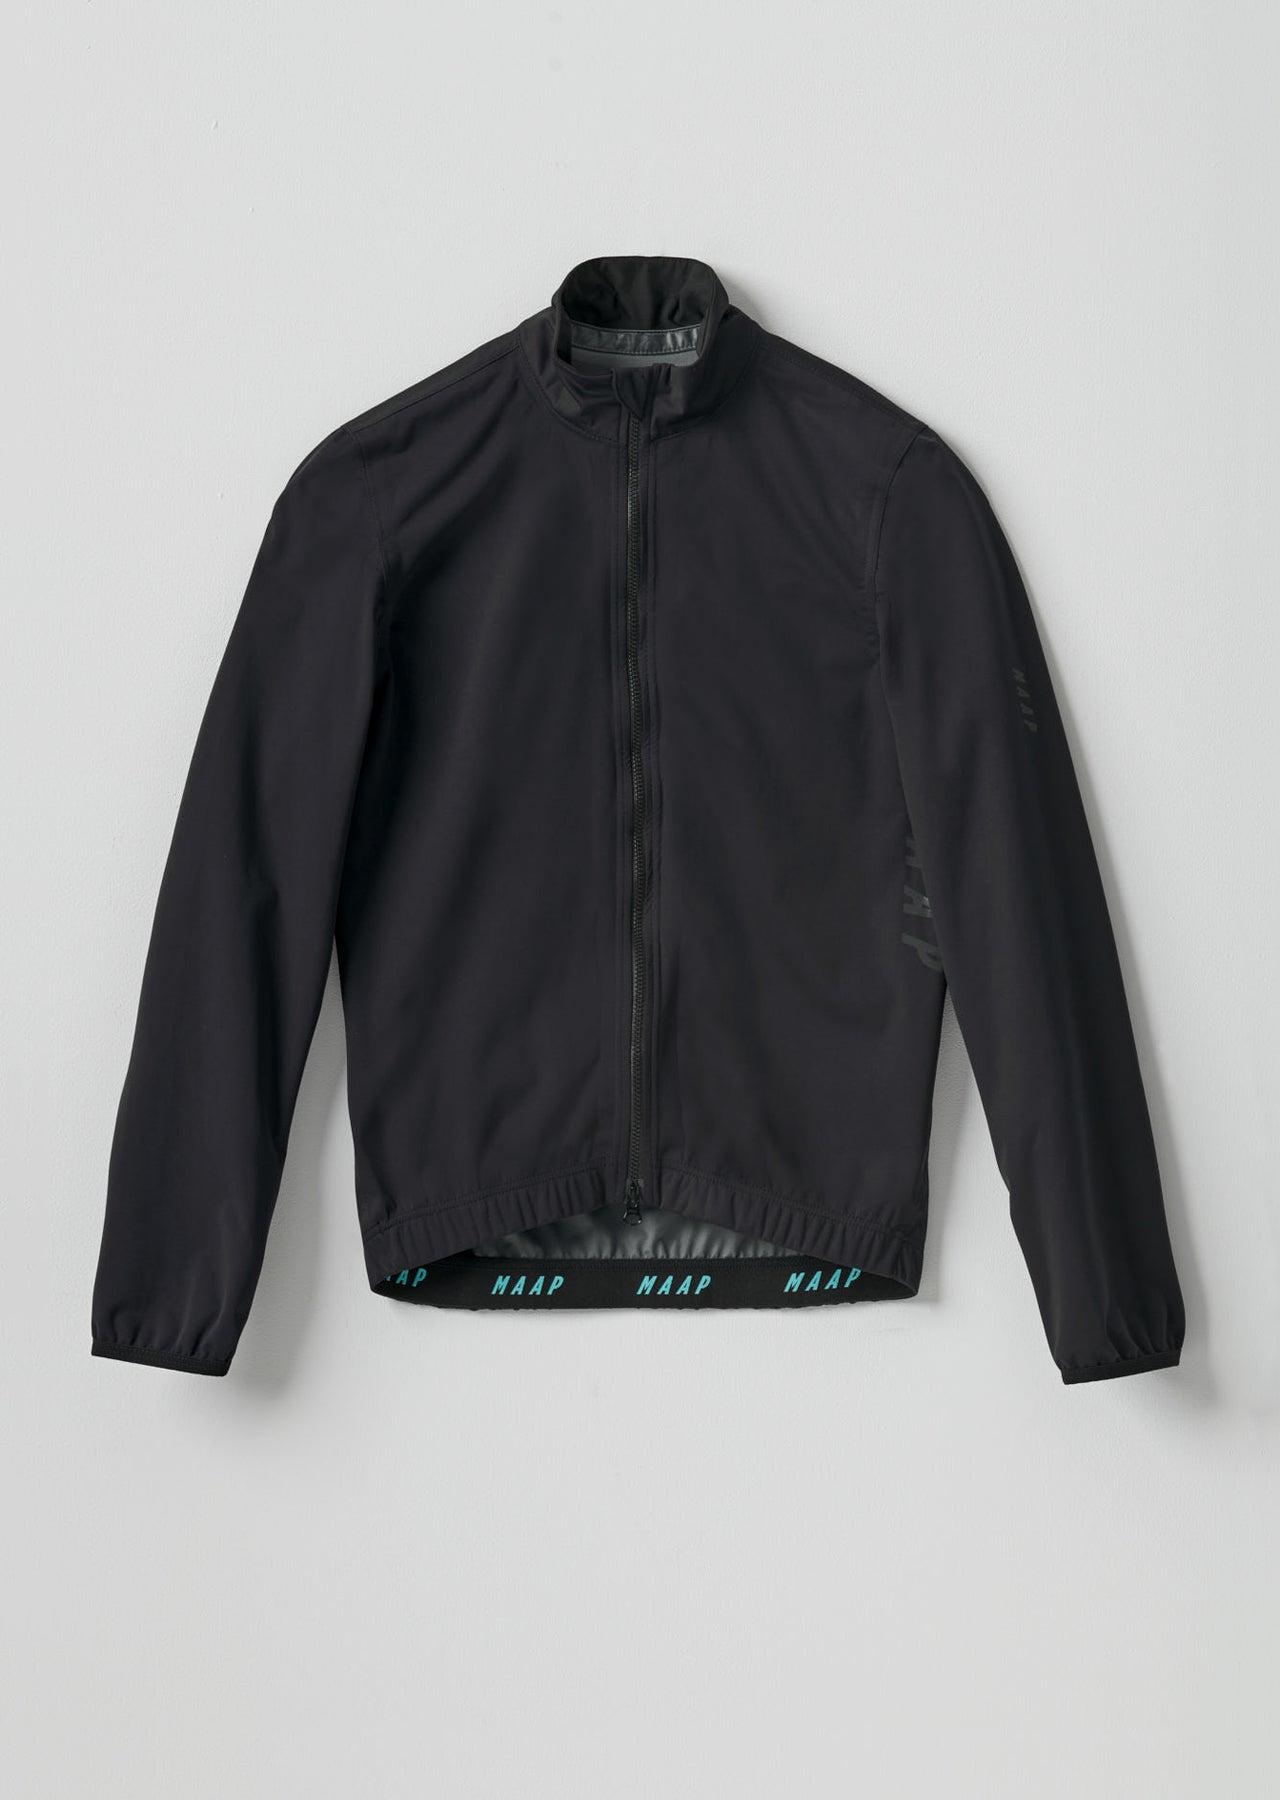 Women's Unite Team Rain Jacket